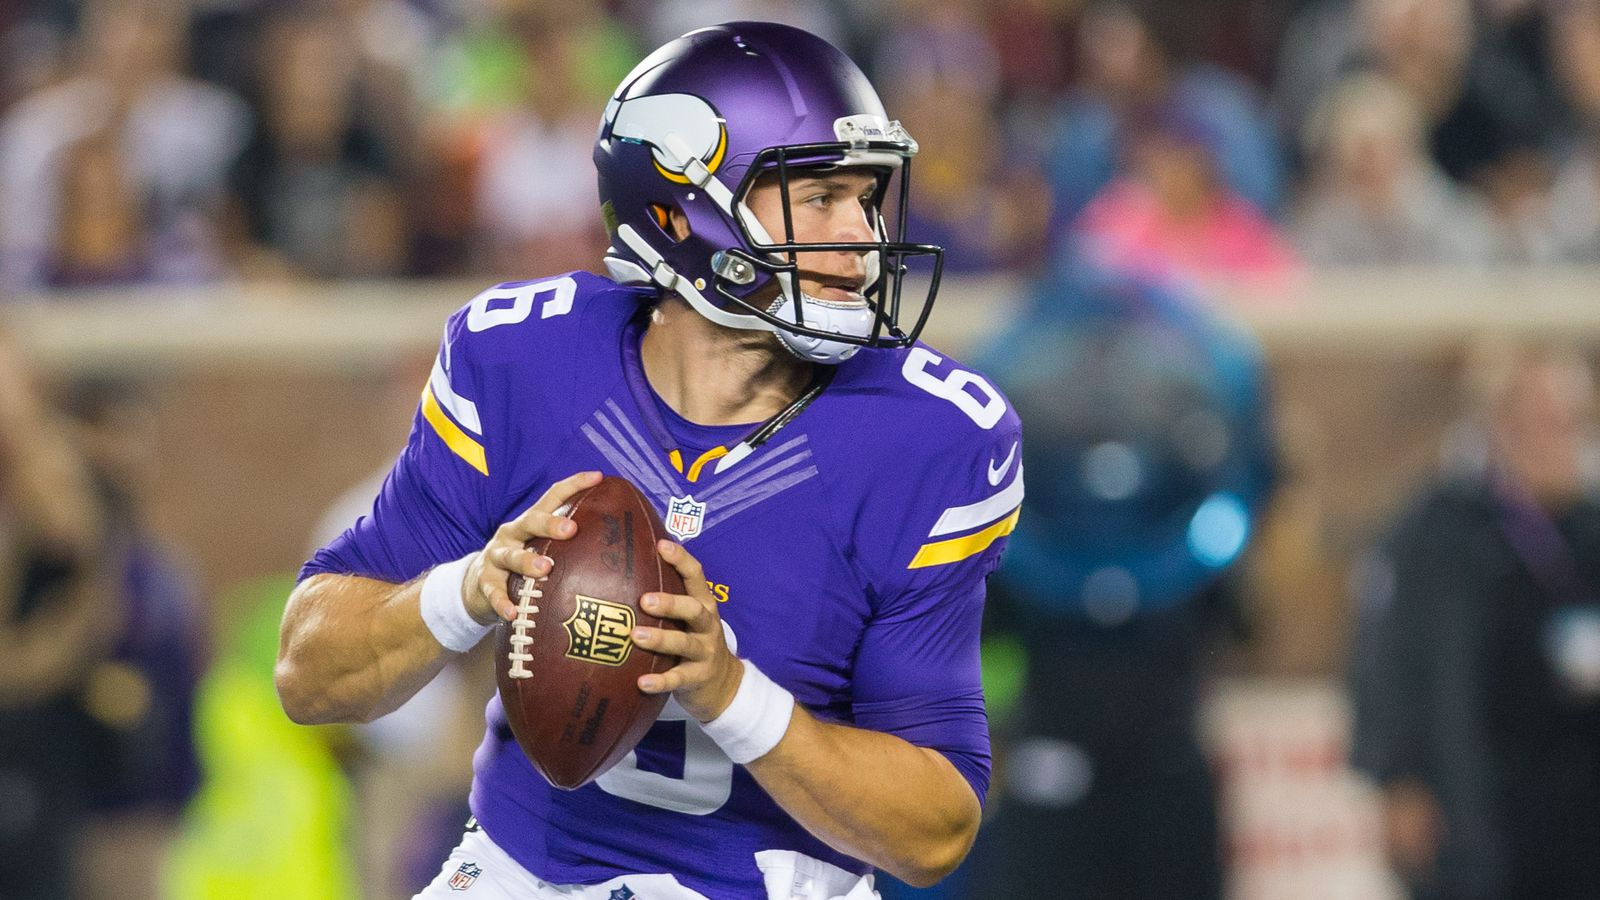 Vikings Backup Qb Out 3 Months After Getting Injured